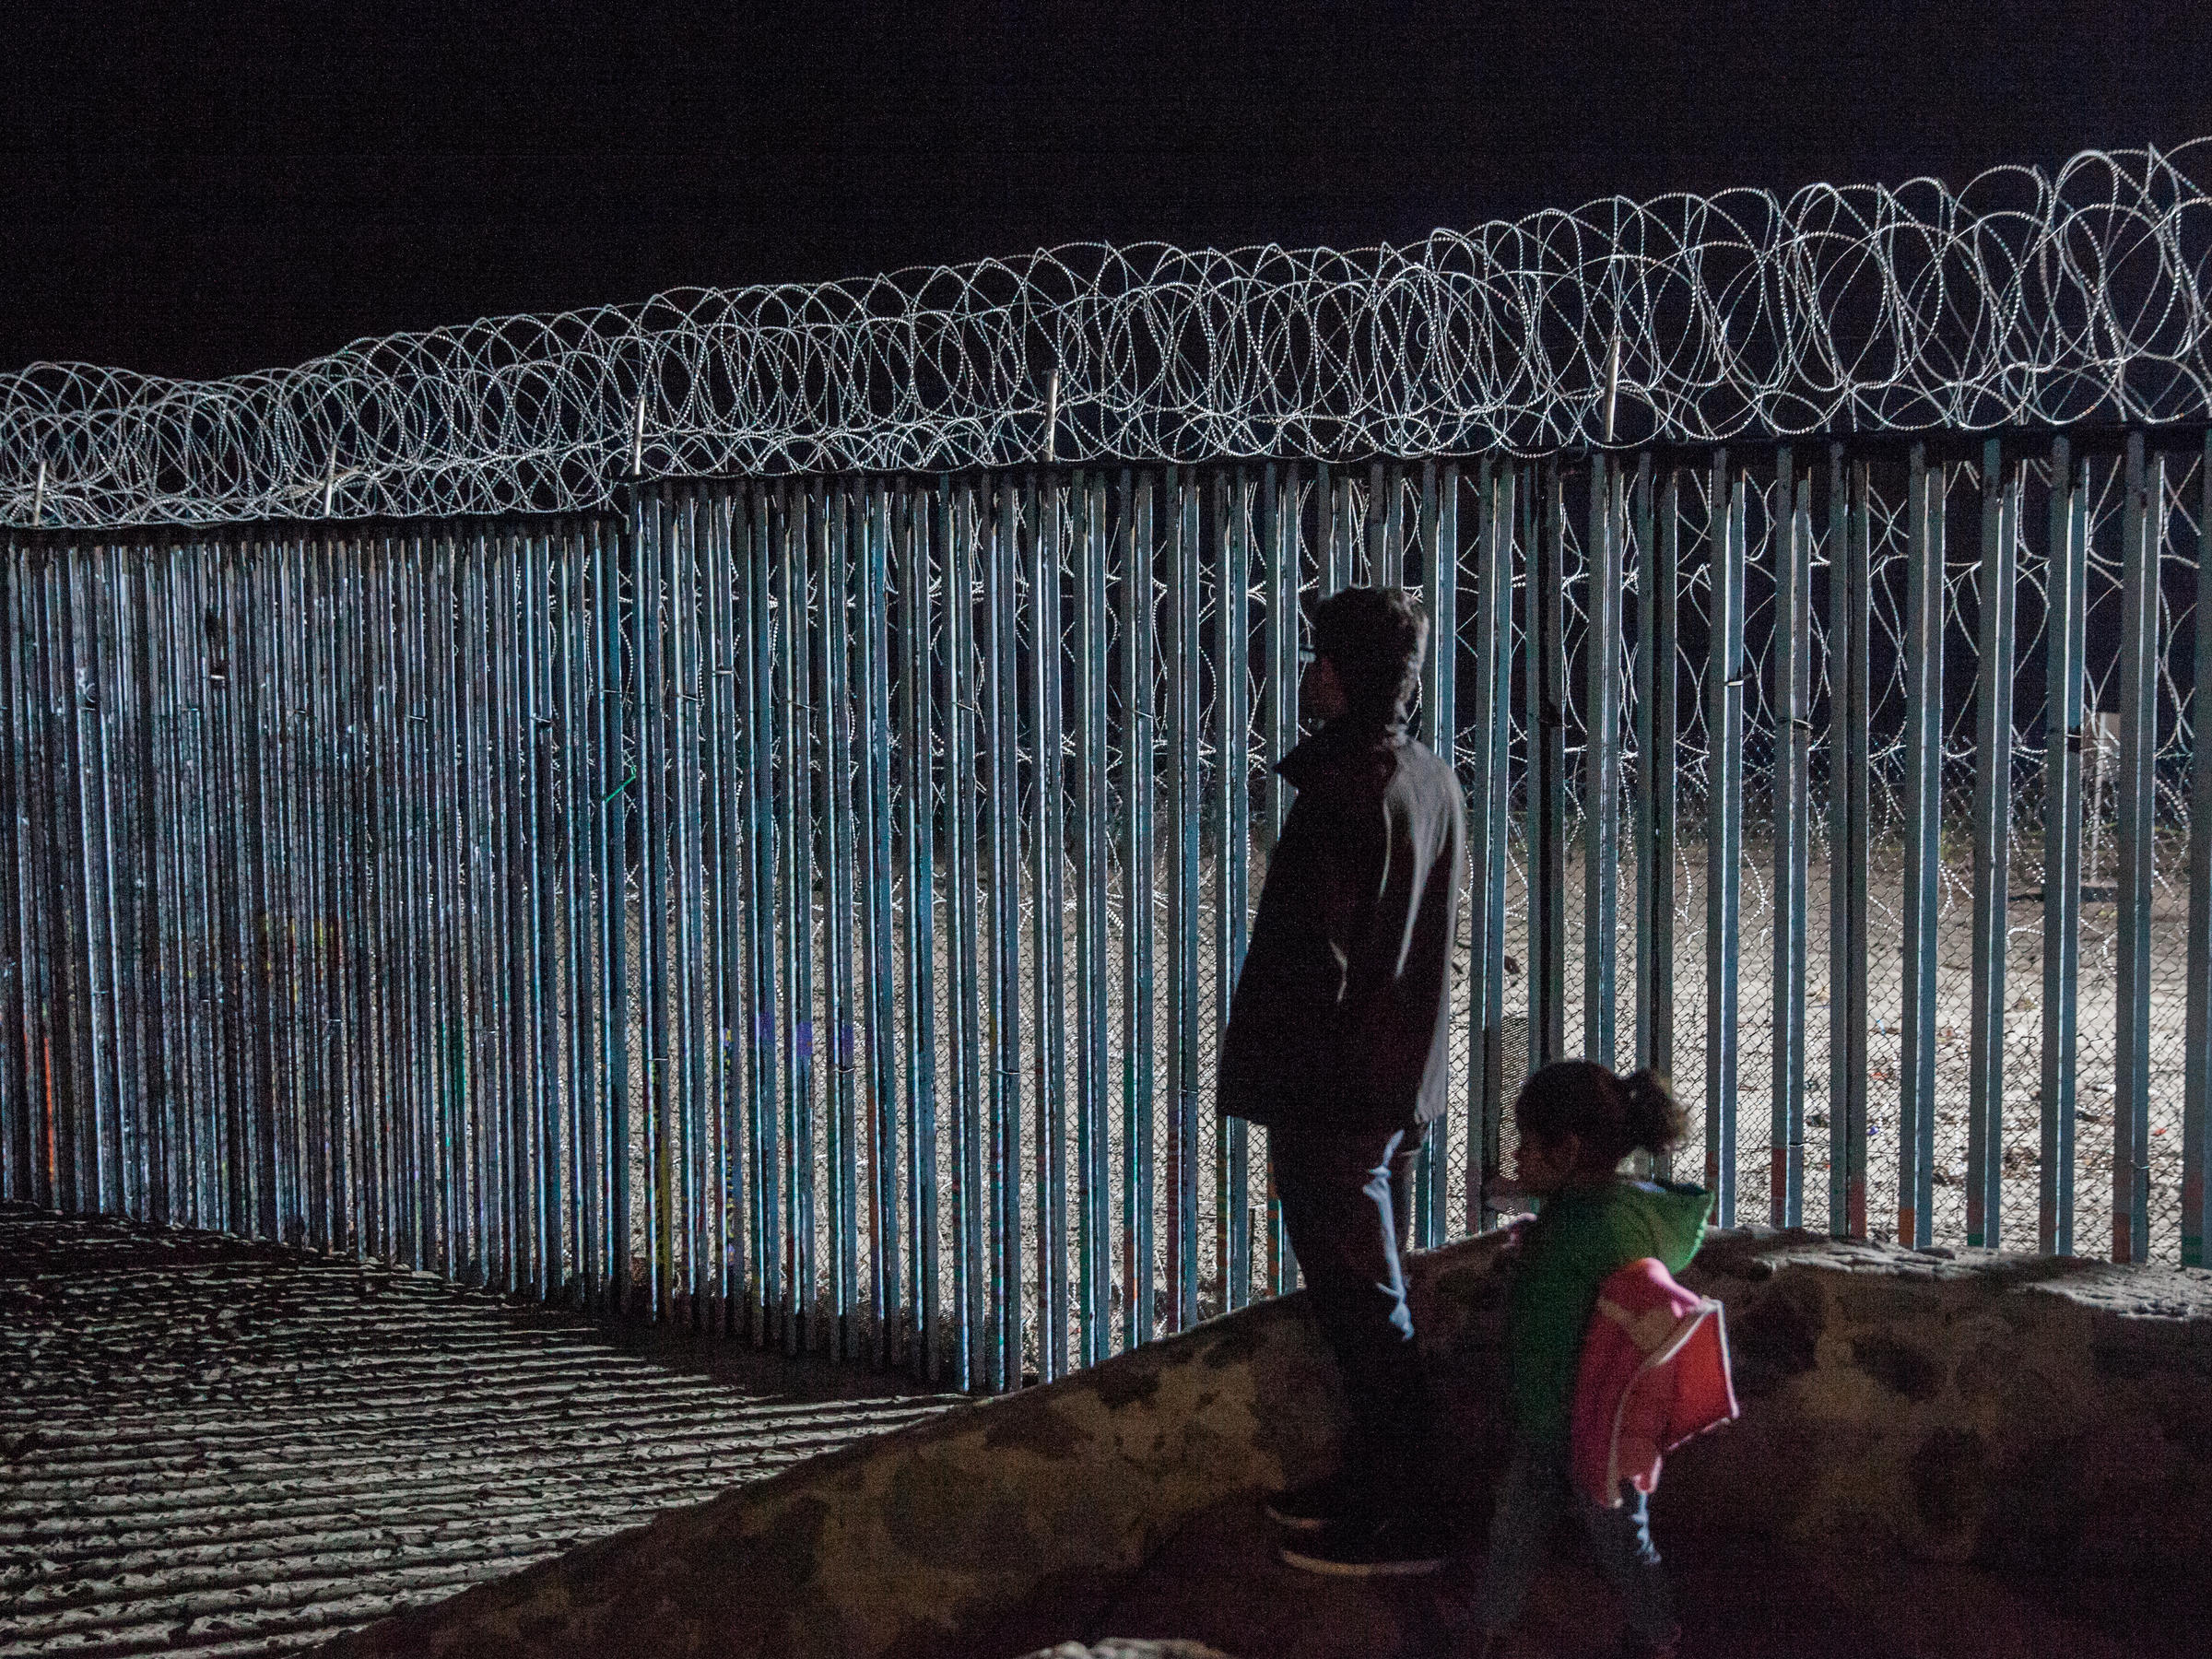 Journalists, Lawyers, Volunteers Face Increased Scrutiny By Border Agents